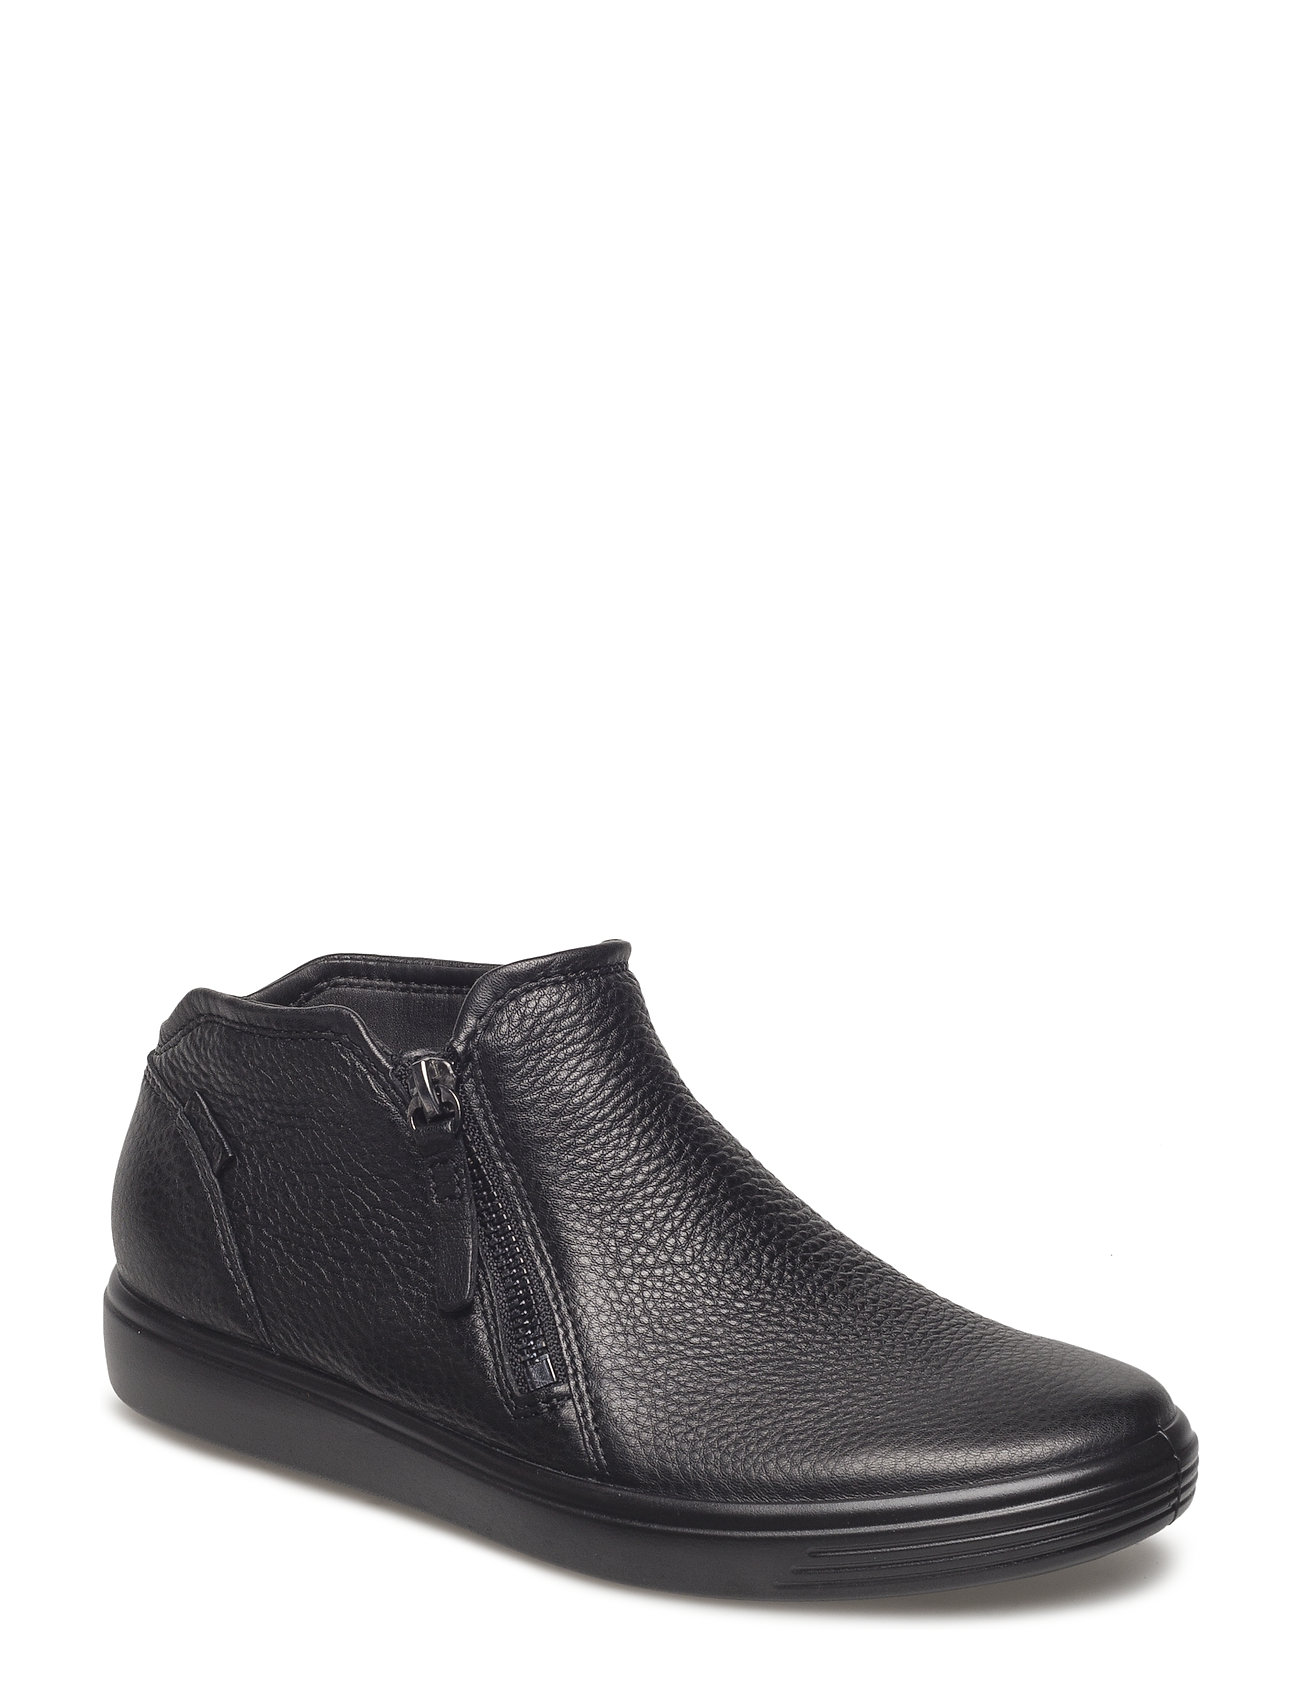 Exostrike W Shoes Boots Ankle Boots Ankle Boots Flat Heel Grå ECCO